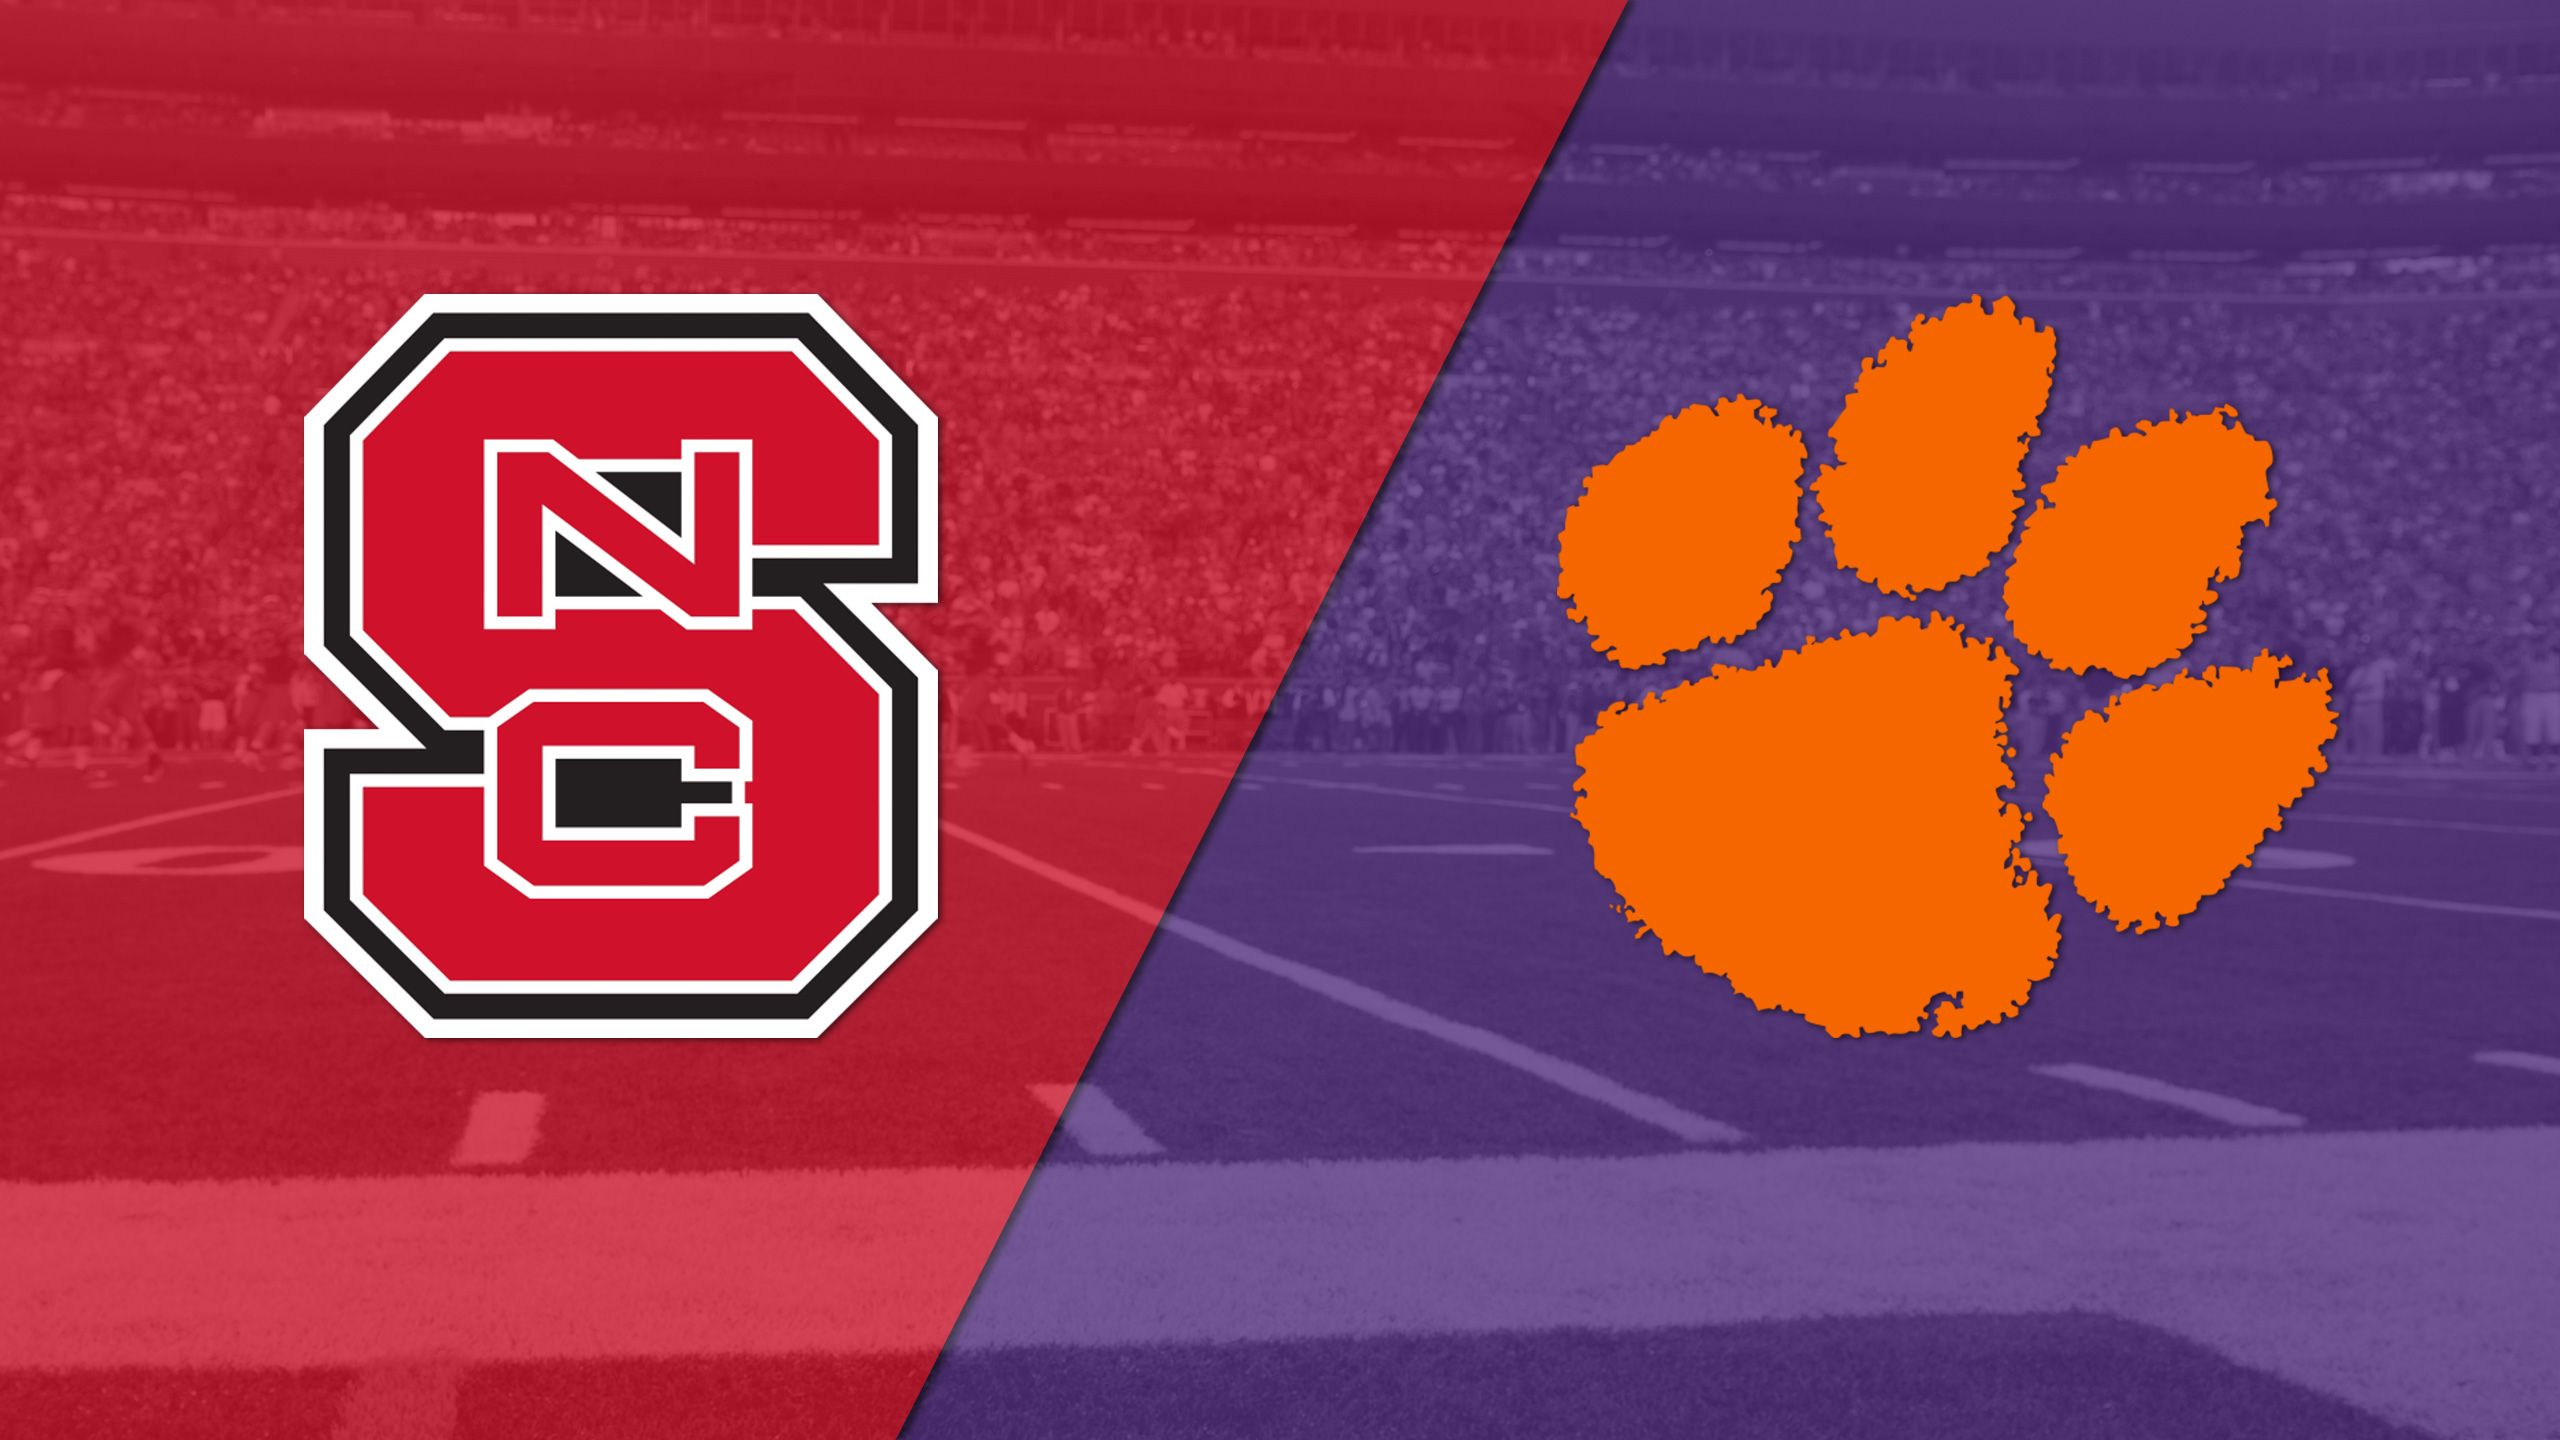 NC State vs. #3 Clemson (Football) (re-air)